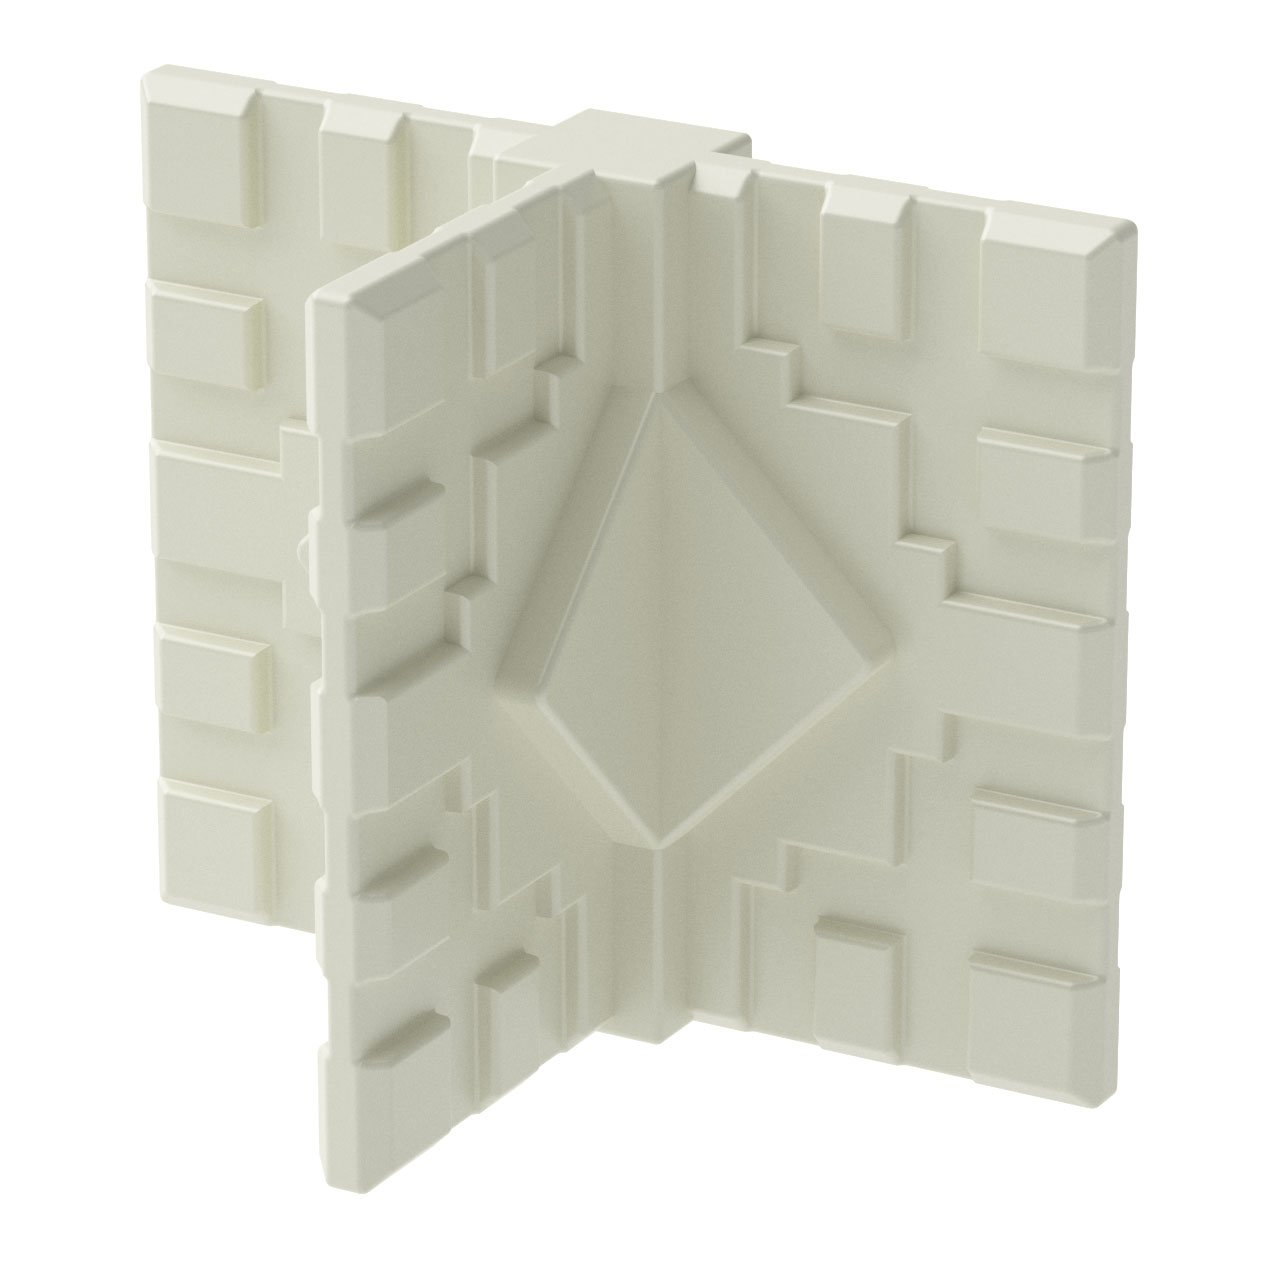 GOGO Panels - CT1W - Cream White Middle Foot 3-Way Connector